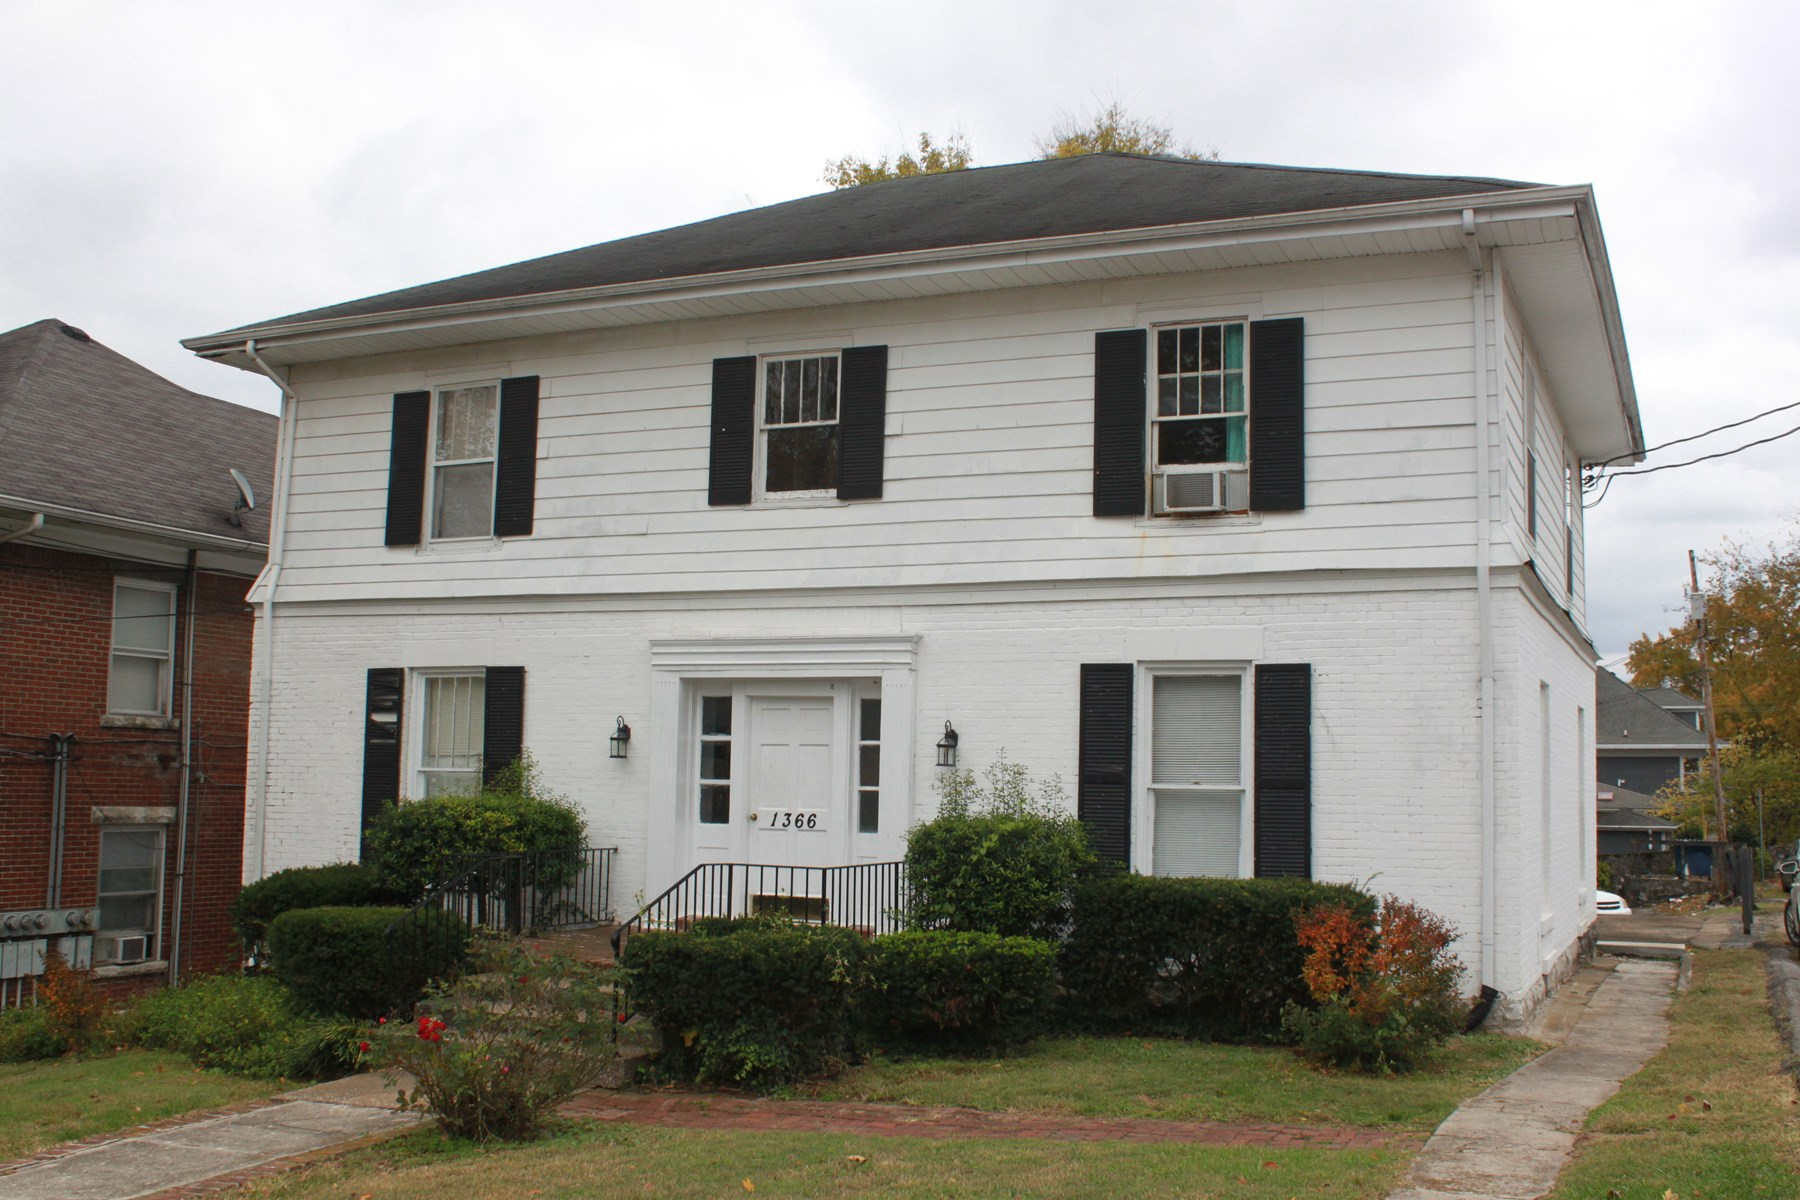 Multi-Unit Apartment Building selling At Auction near WKU Campus.